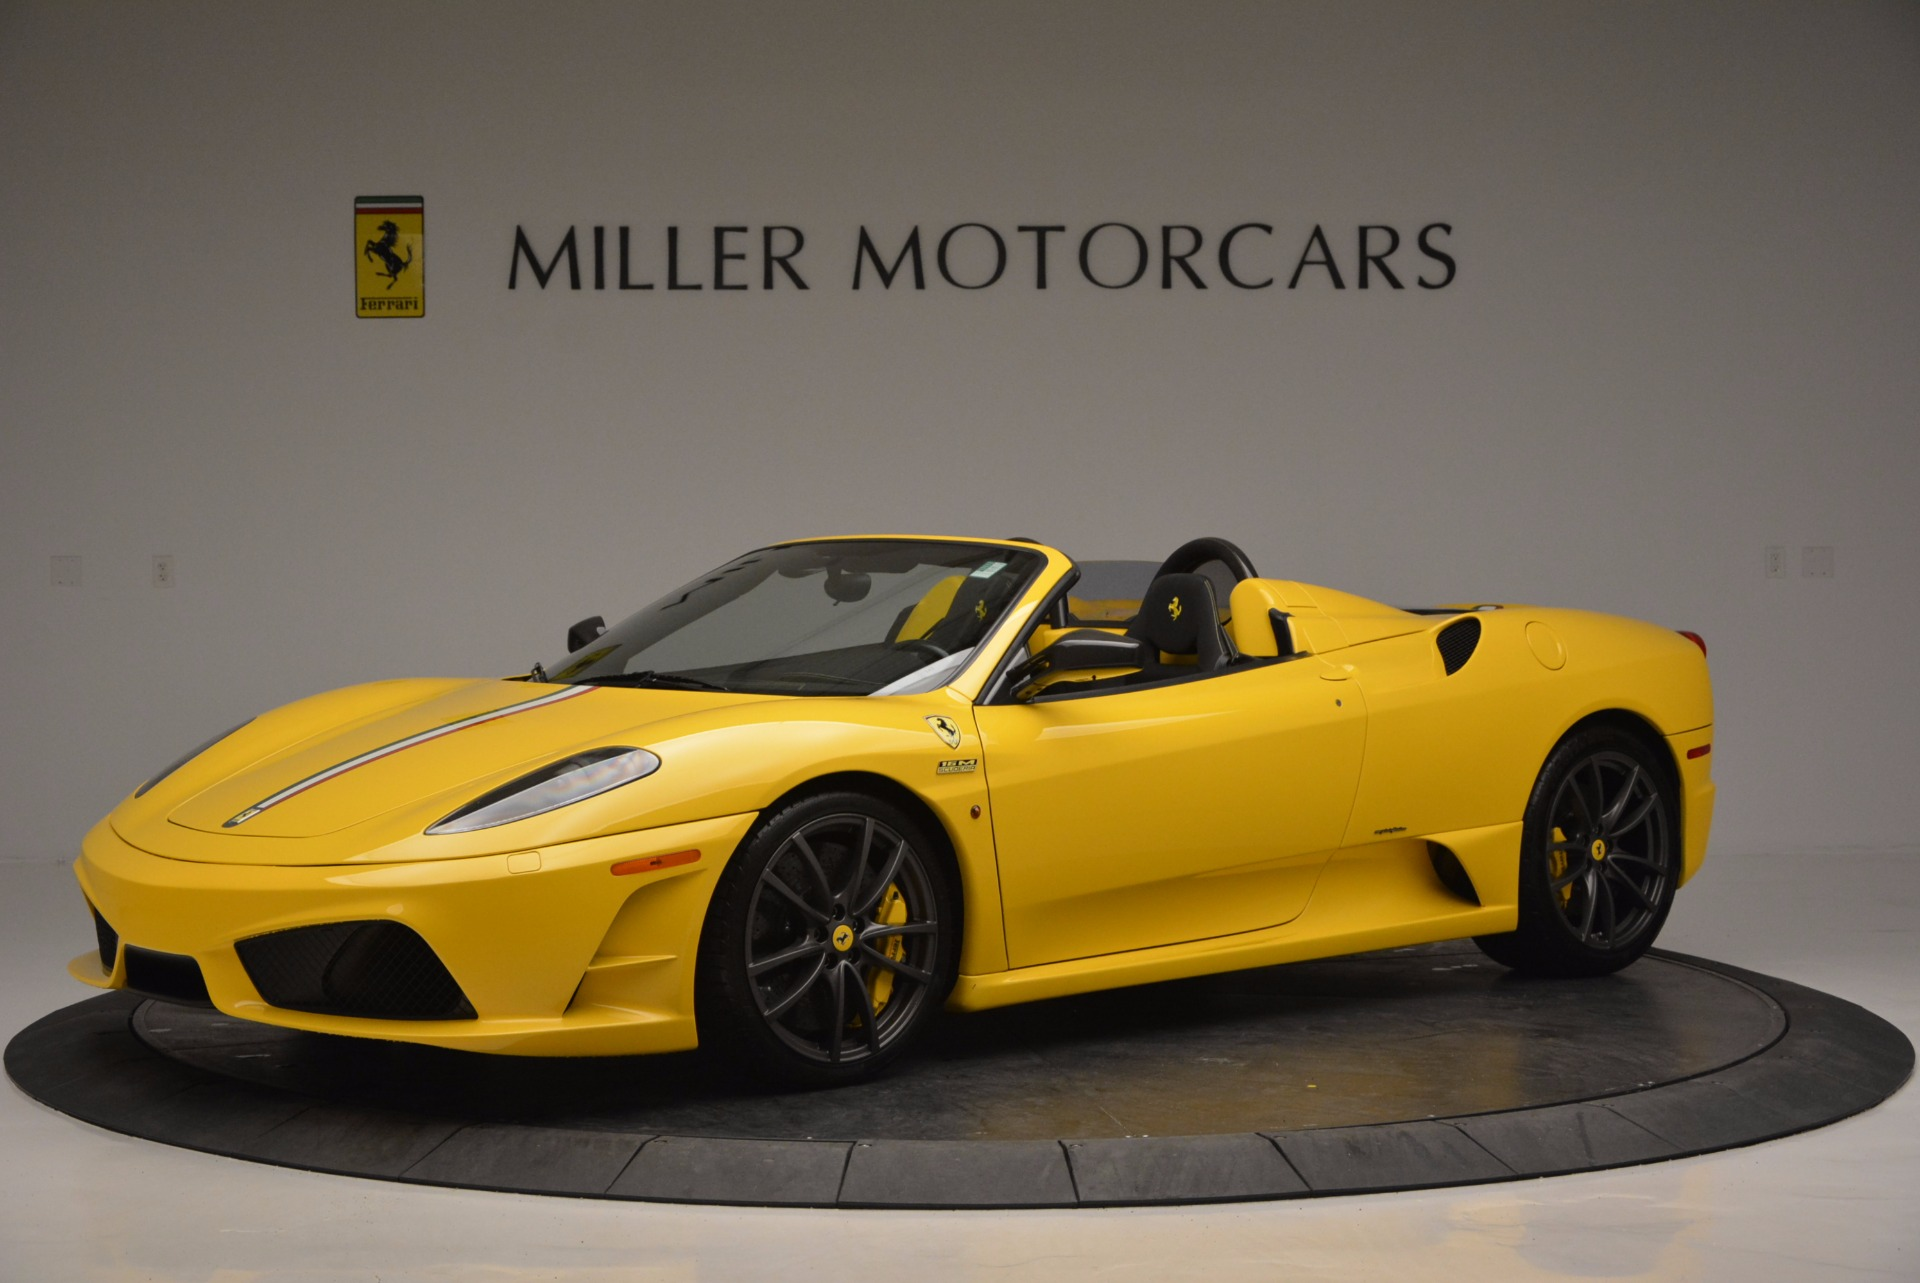 Used 2009 Ferrari F430 Scuderia 16M For Sale In Greenwich, CT 856_p2